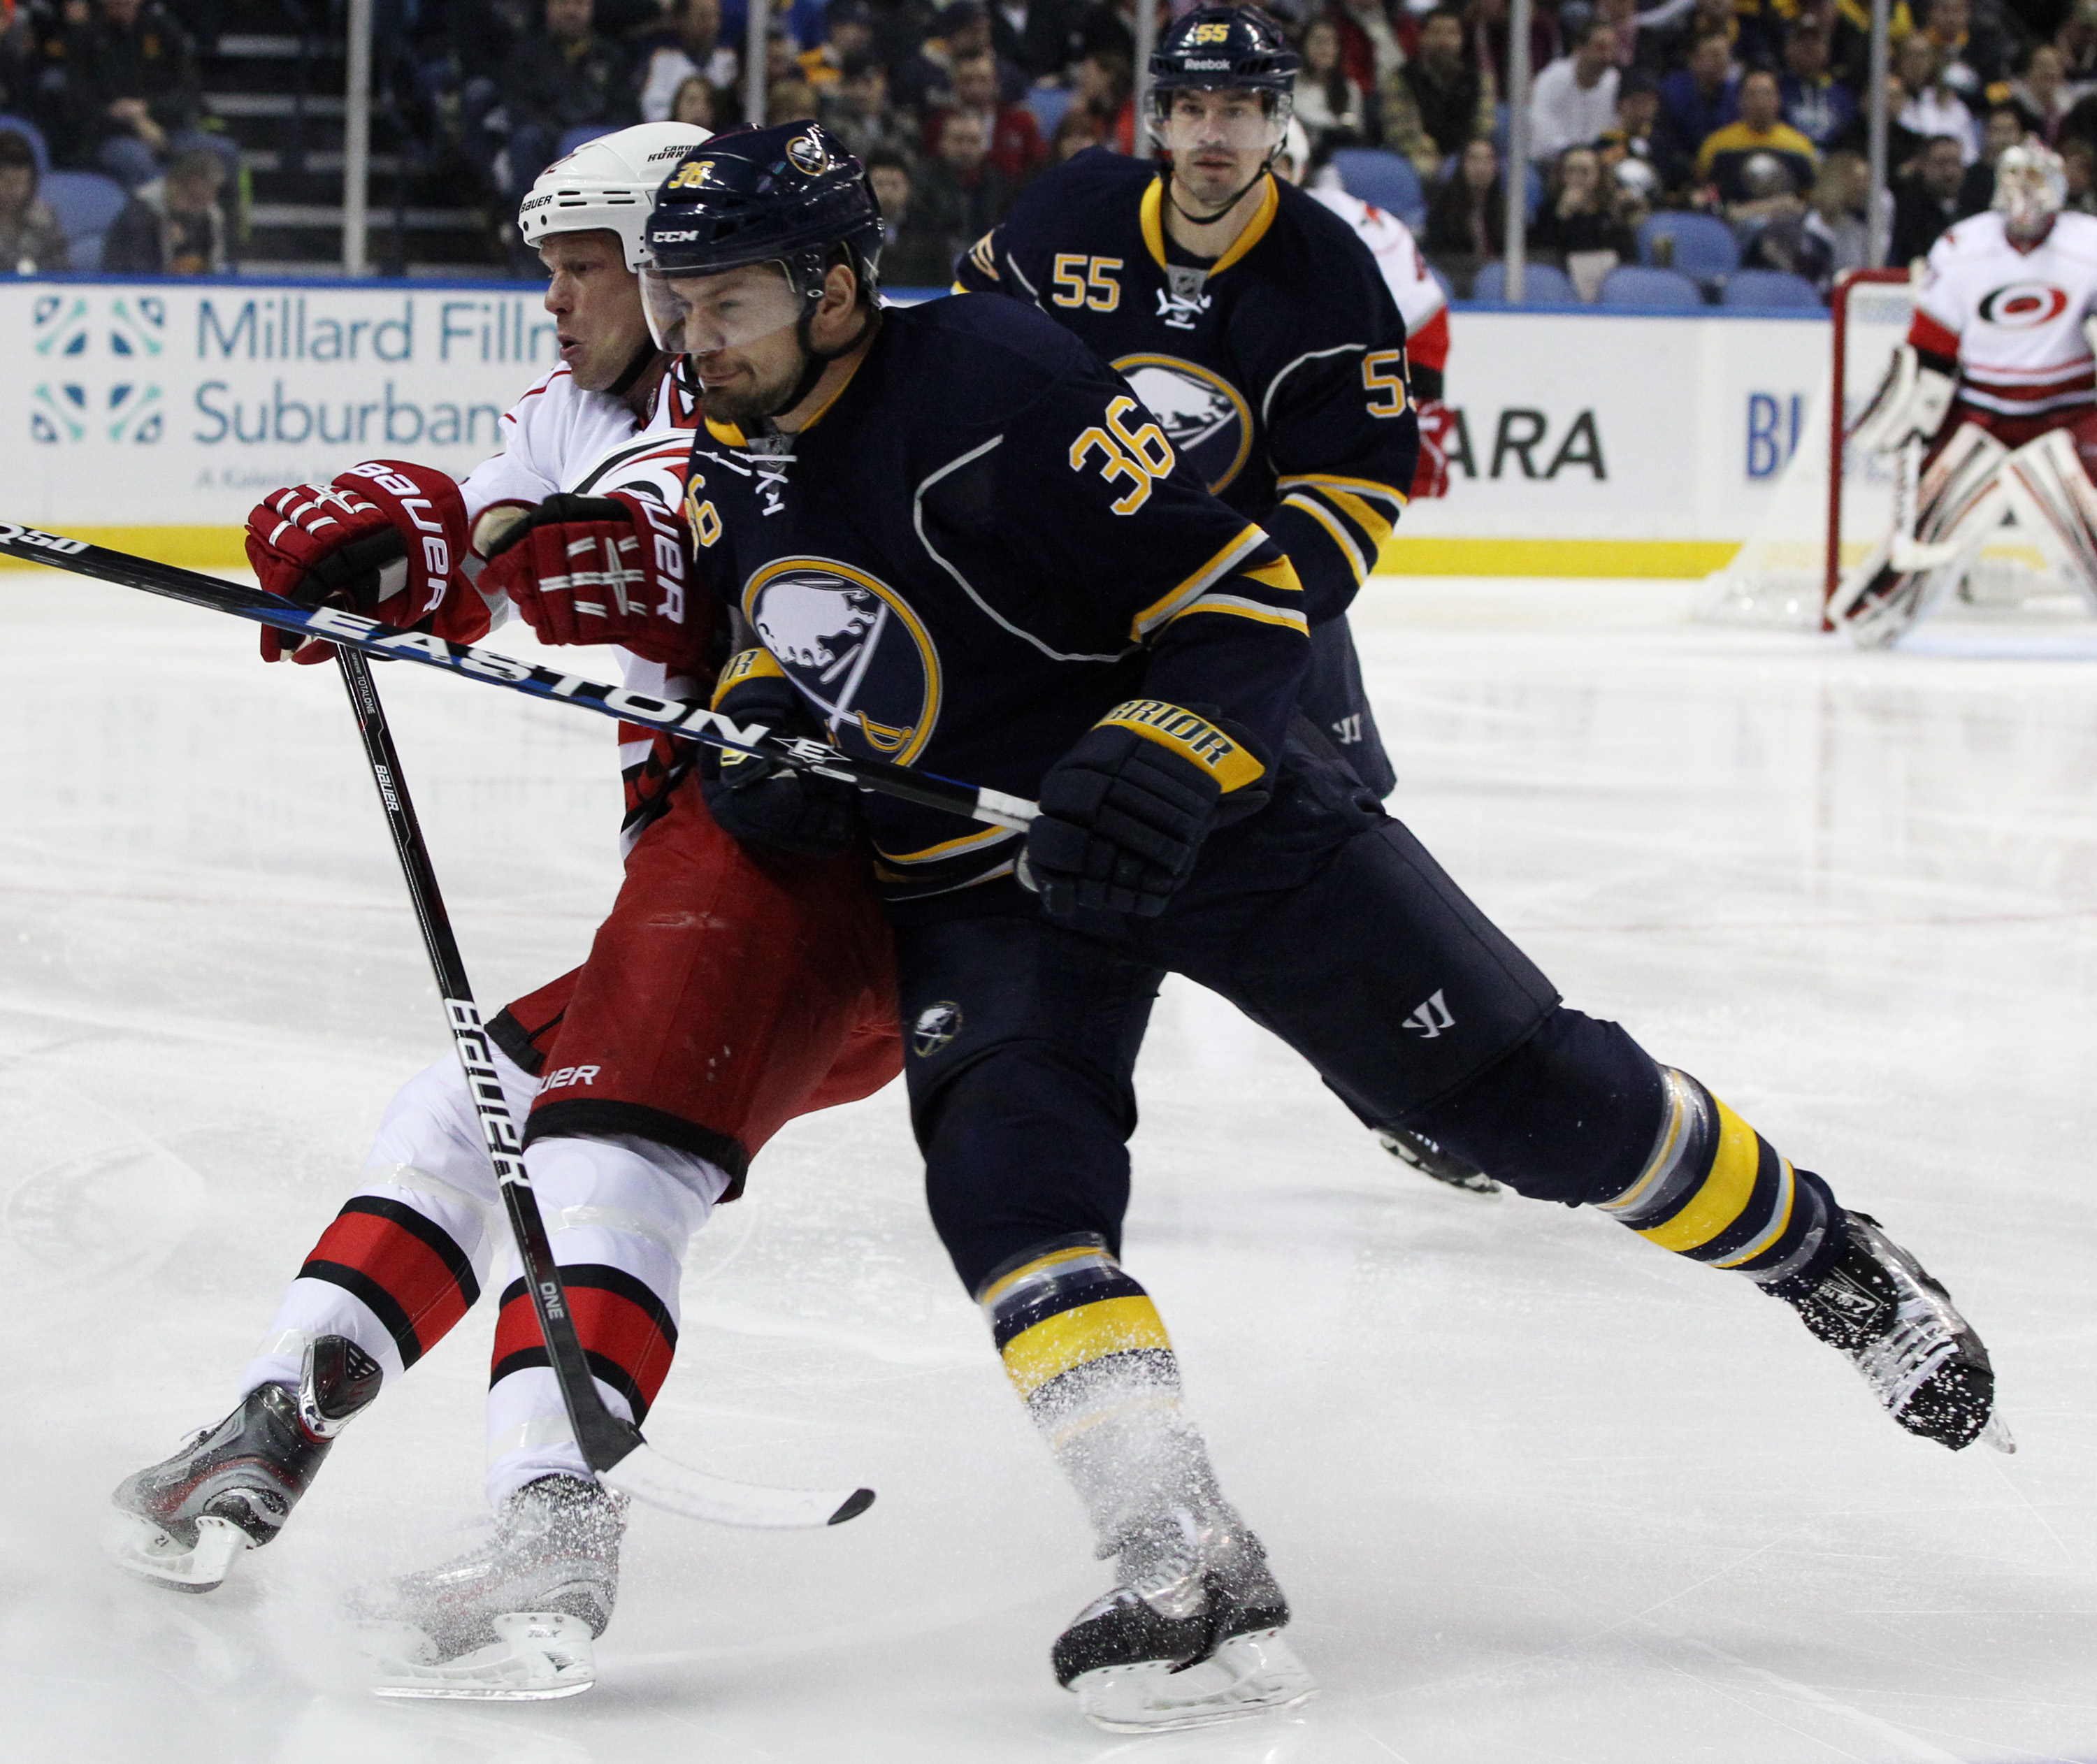 Then-Buffalo Sabres right wing Patrick Kaleta (36) hits Carolina Hurricanes center Eric Staal (12) at  First Niagara Center in Buffalo on Jan. 25, 2013.  Kaleta is part of the Kaleta Group that now plans to build a multisport recreation center with two ice rinks in Hamburg. {File photo by James P. McCoy / Buffalo News}